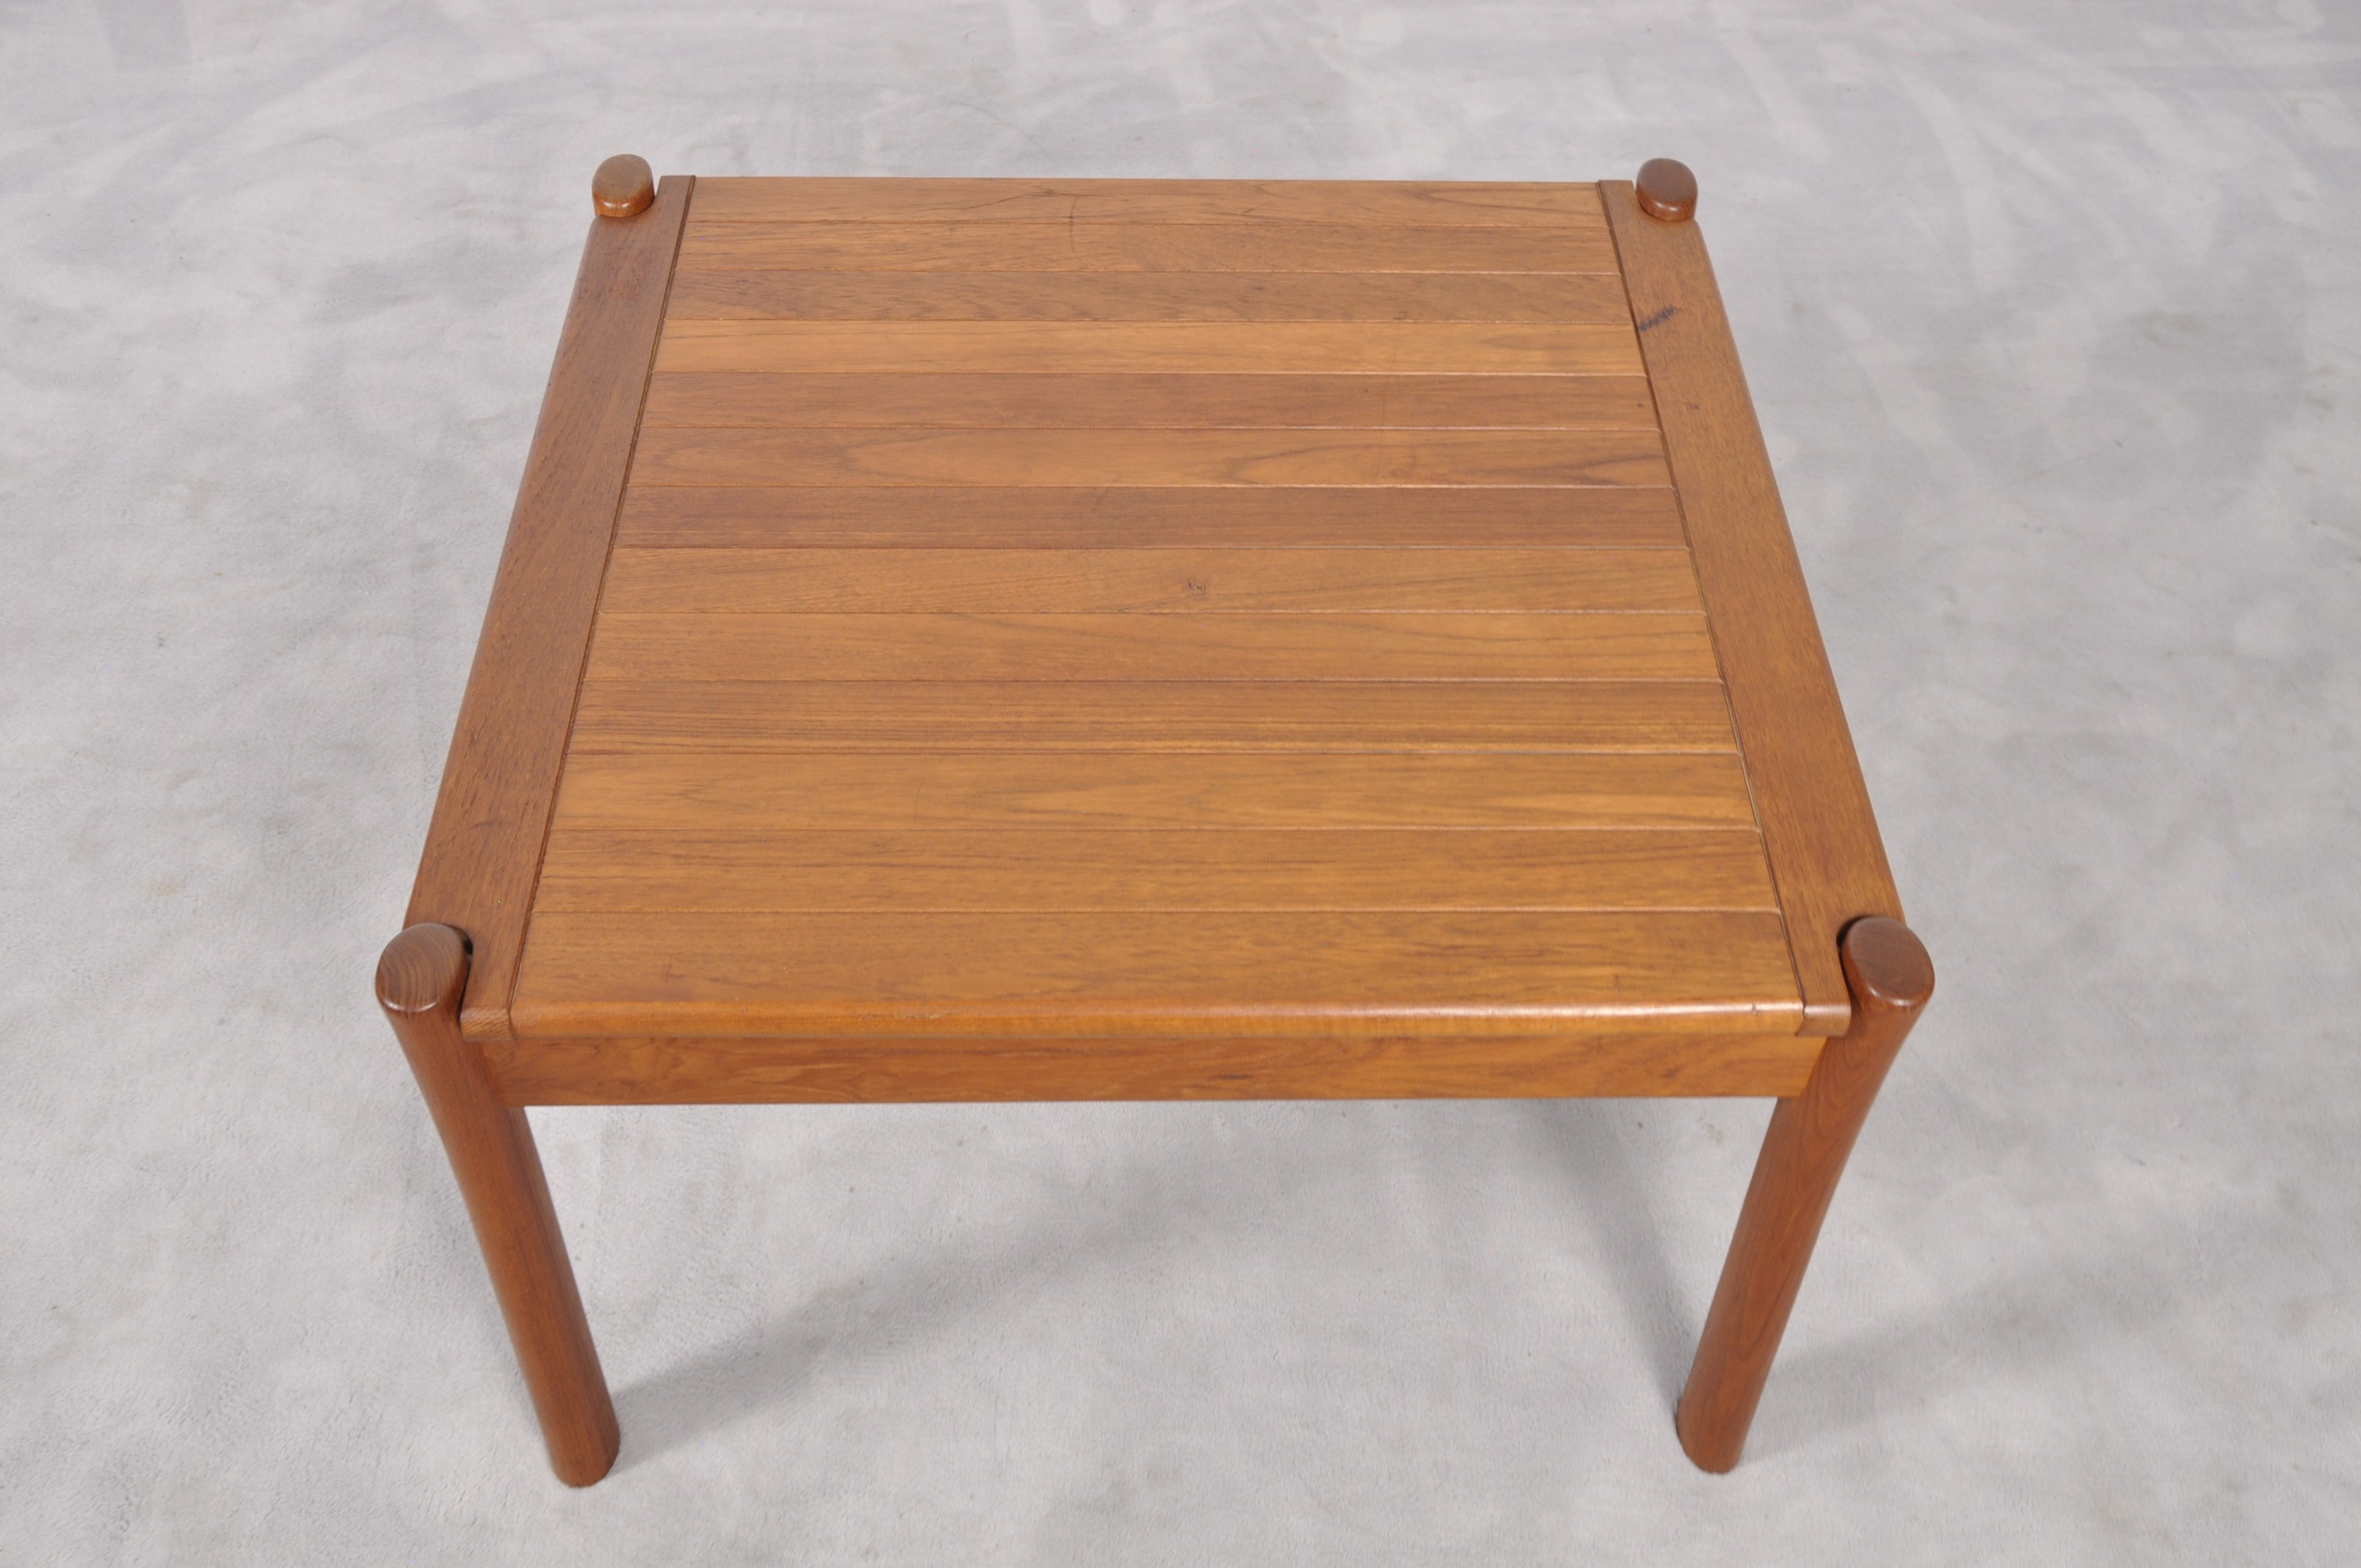 Vintage danish teak coffee table with rounded edges 1960s